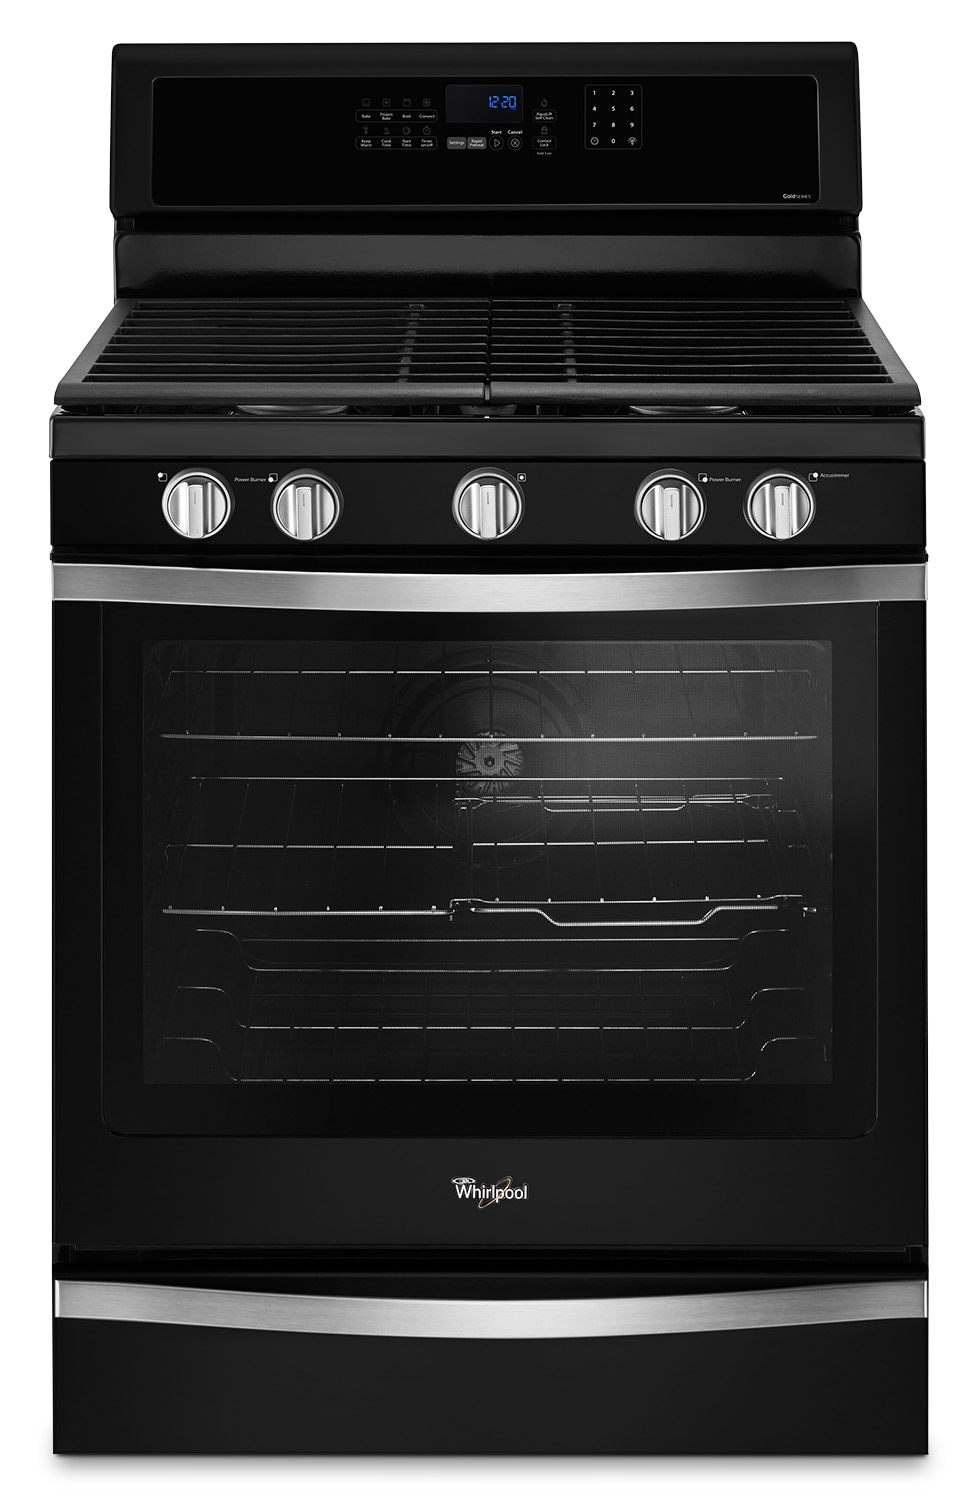 Cooking Products - Whirlpool Black Freestanding Gas Range (5.8 Cu. Ft.) - WFG745H0FE